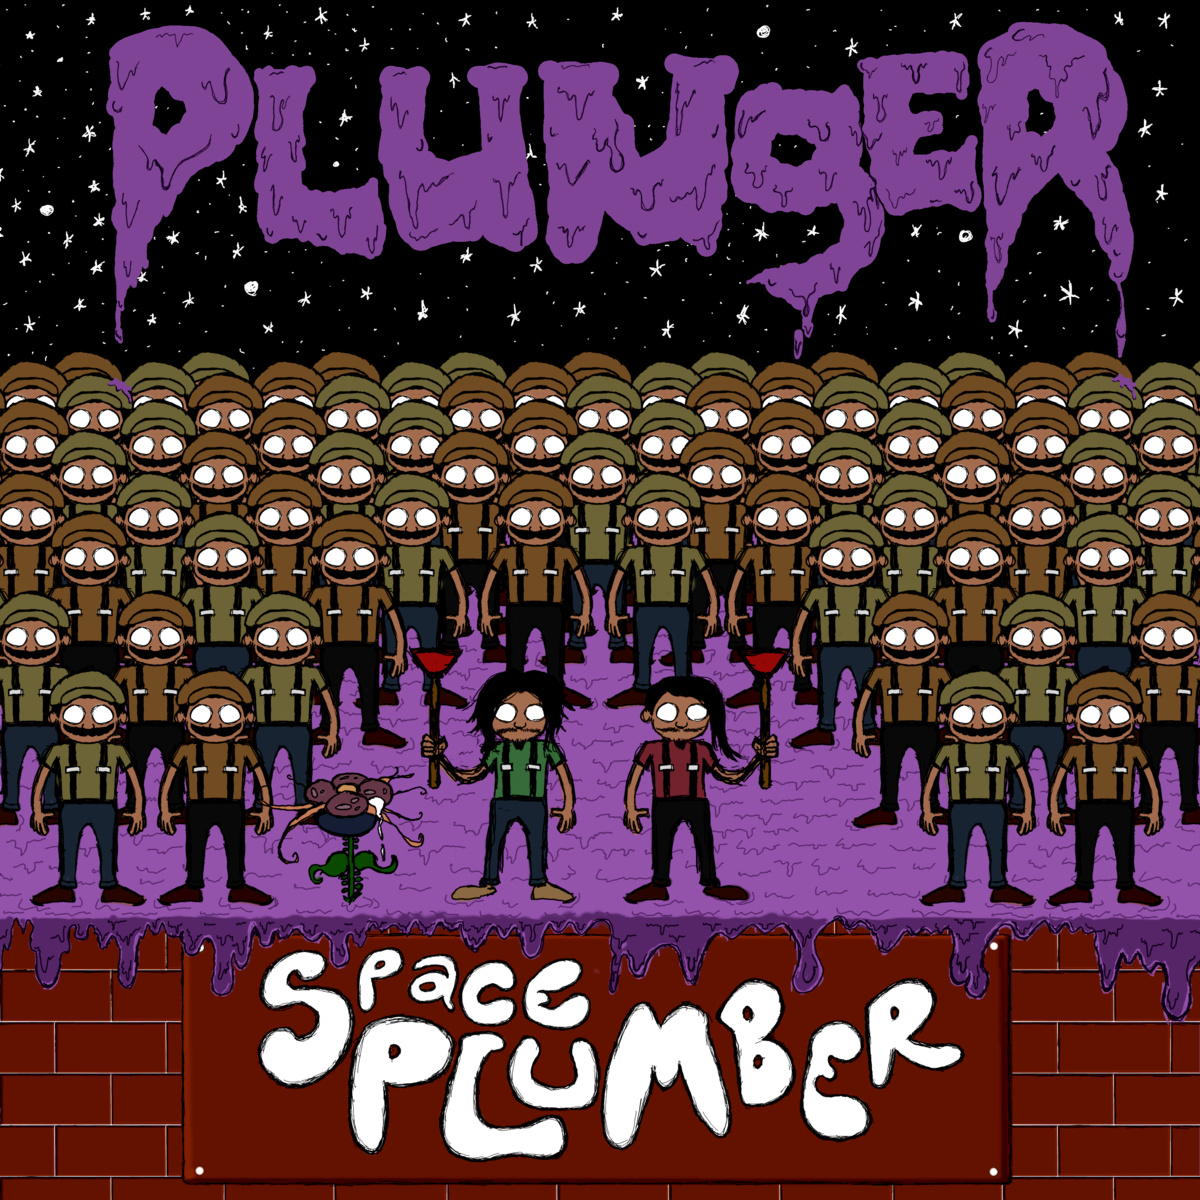 plunger space plumber